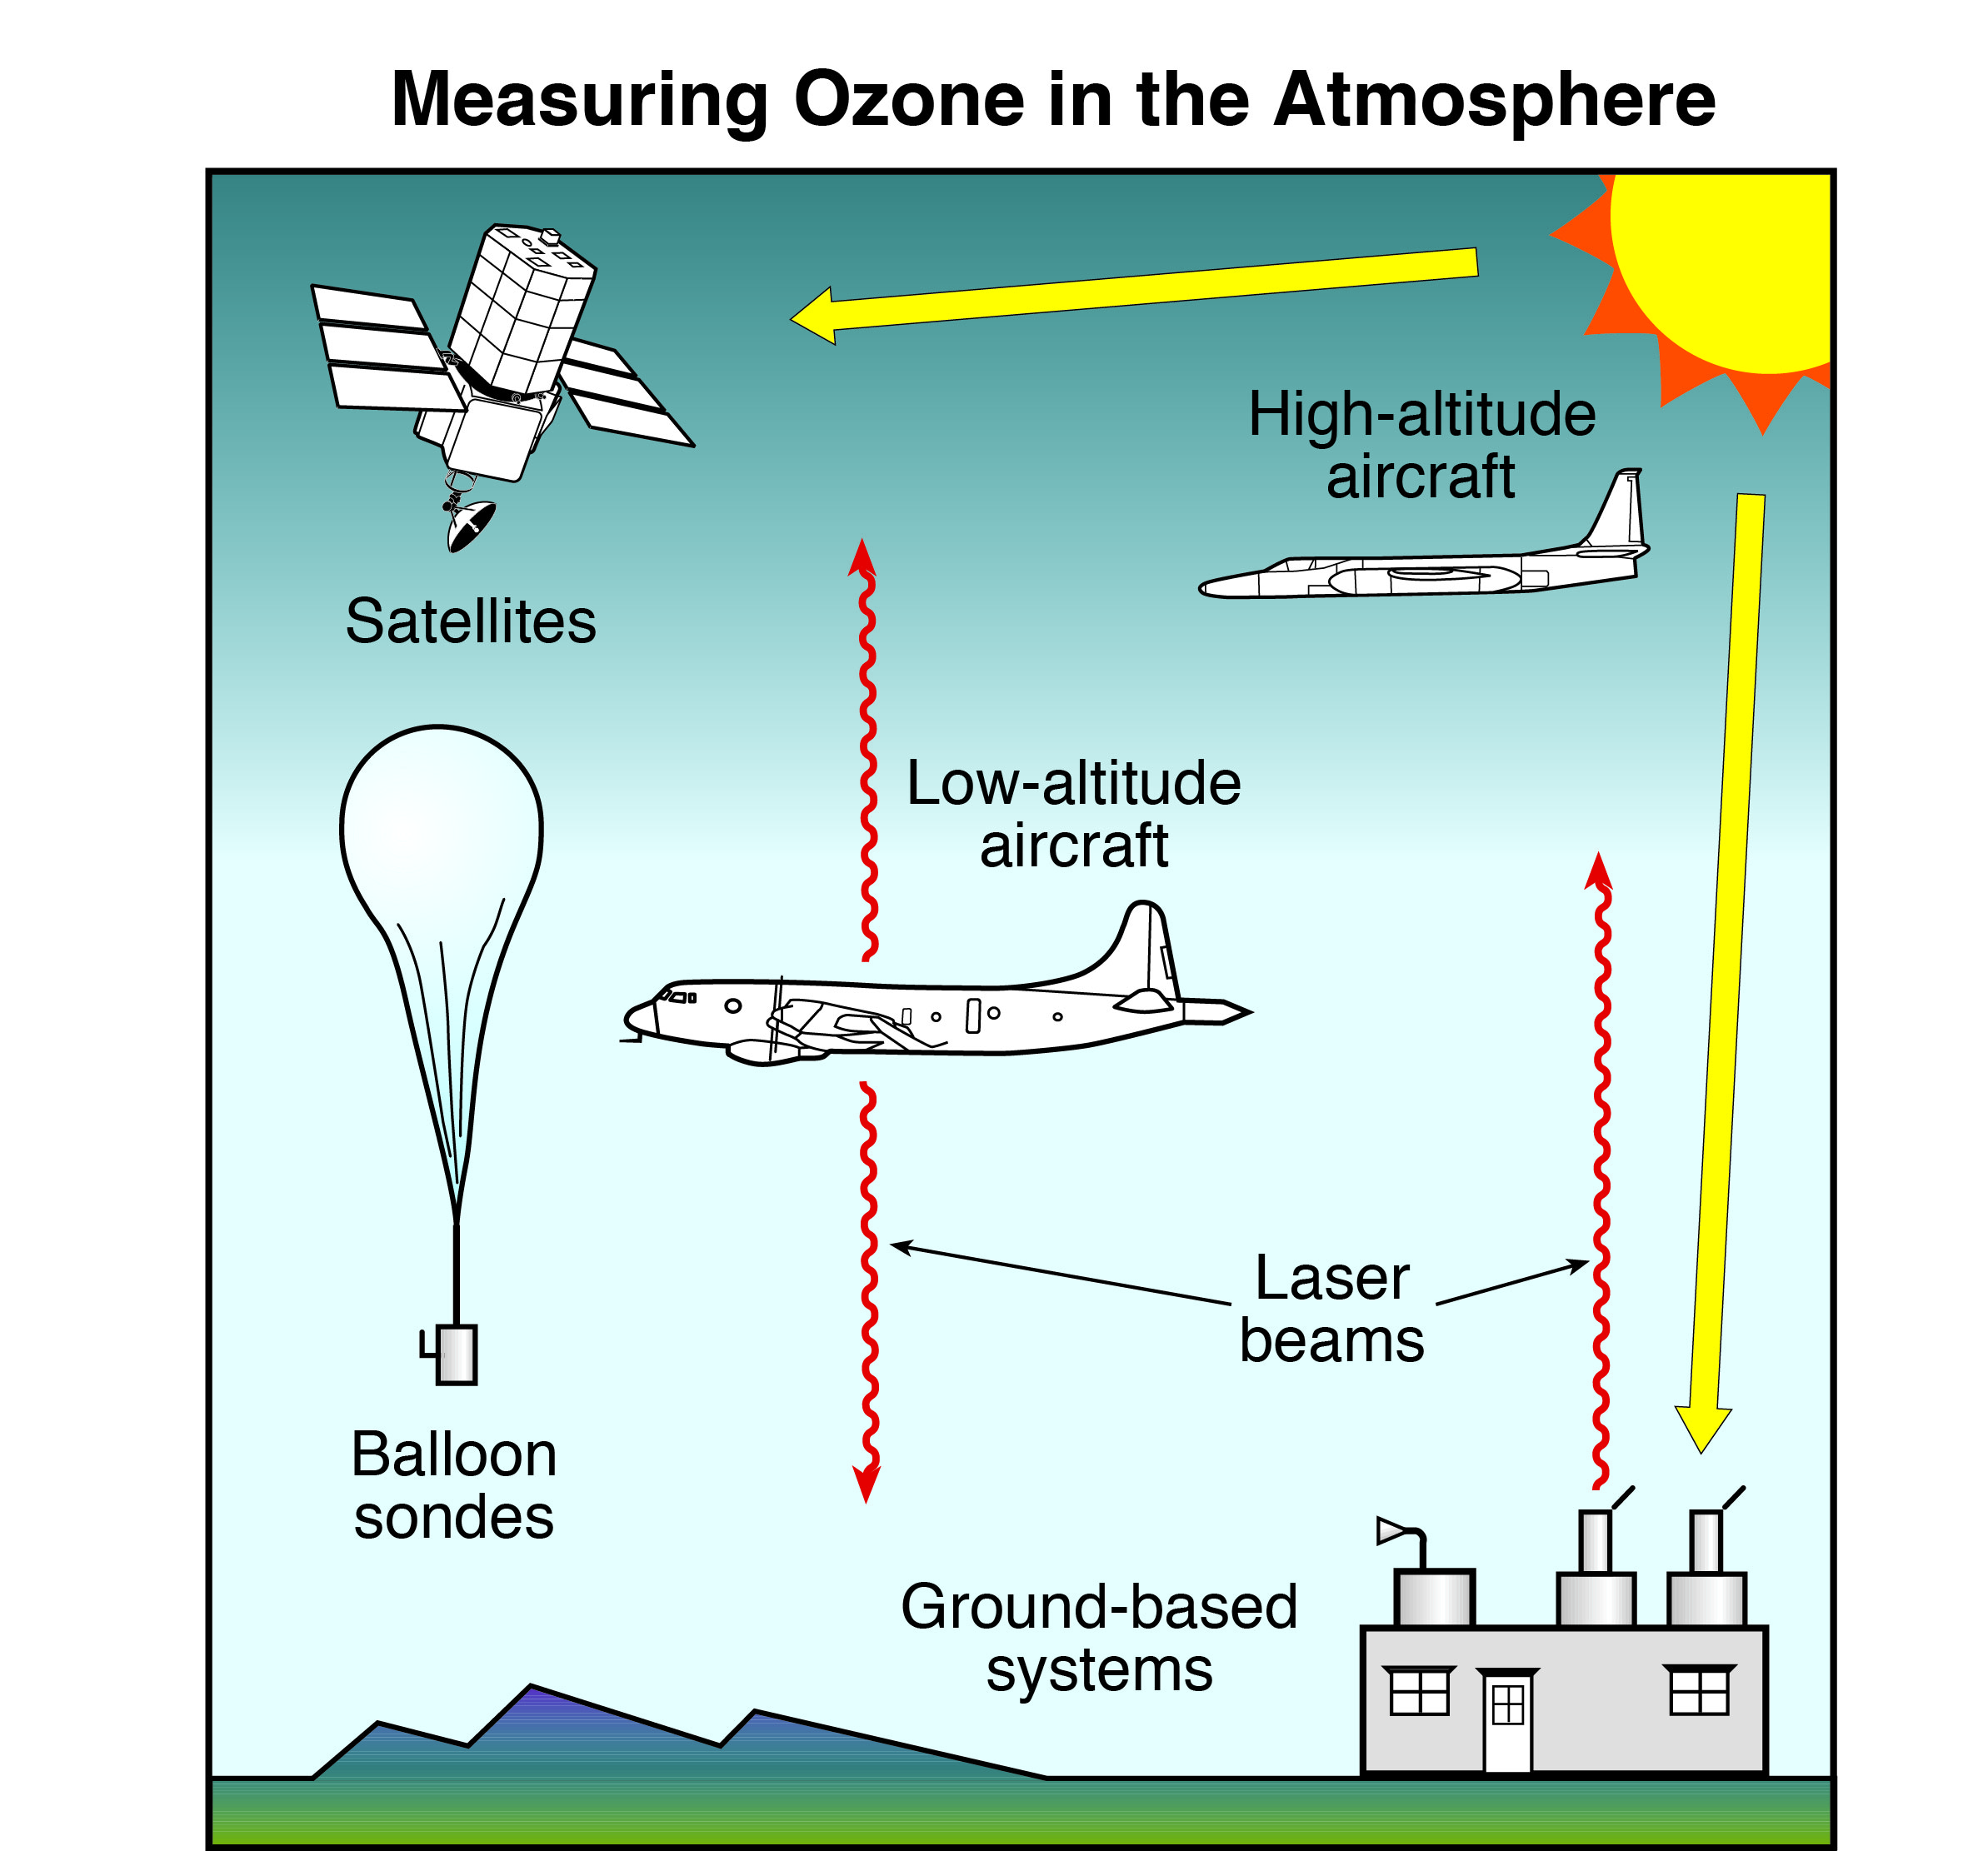 Scientific Assessment Of Ozone Depletion Twenty Questions And Answers About The Ozone Layer